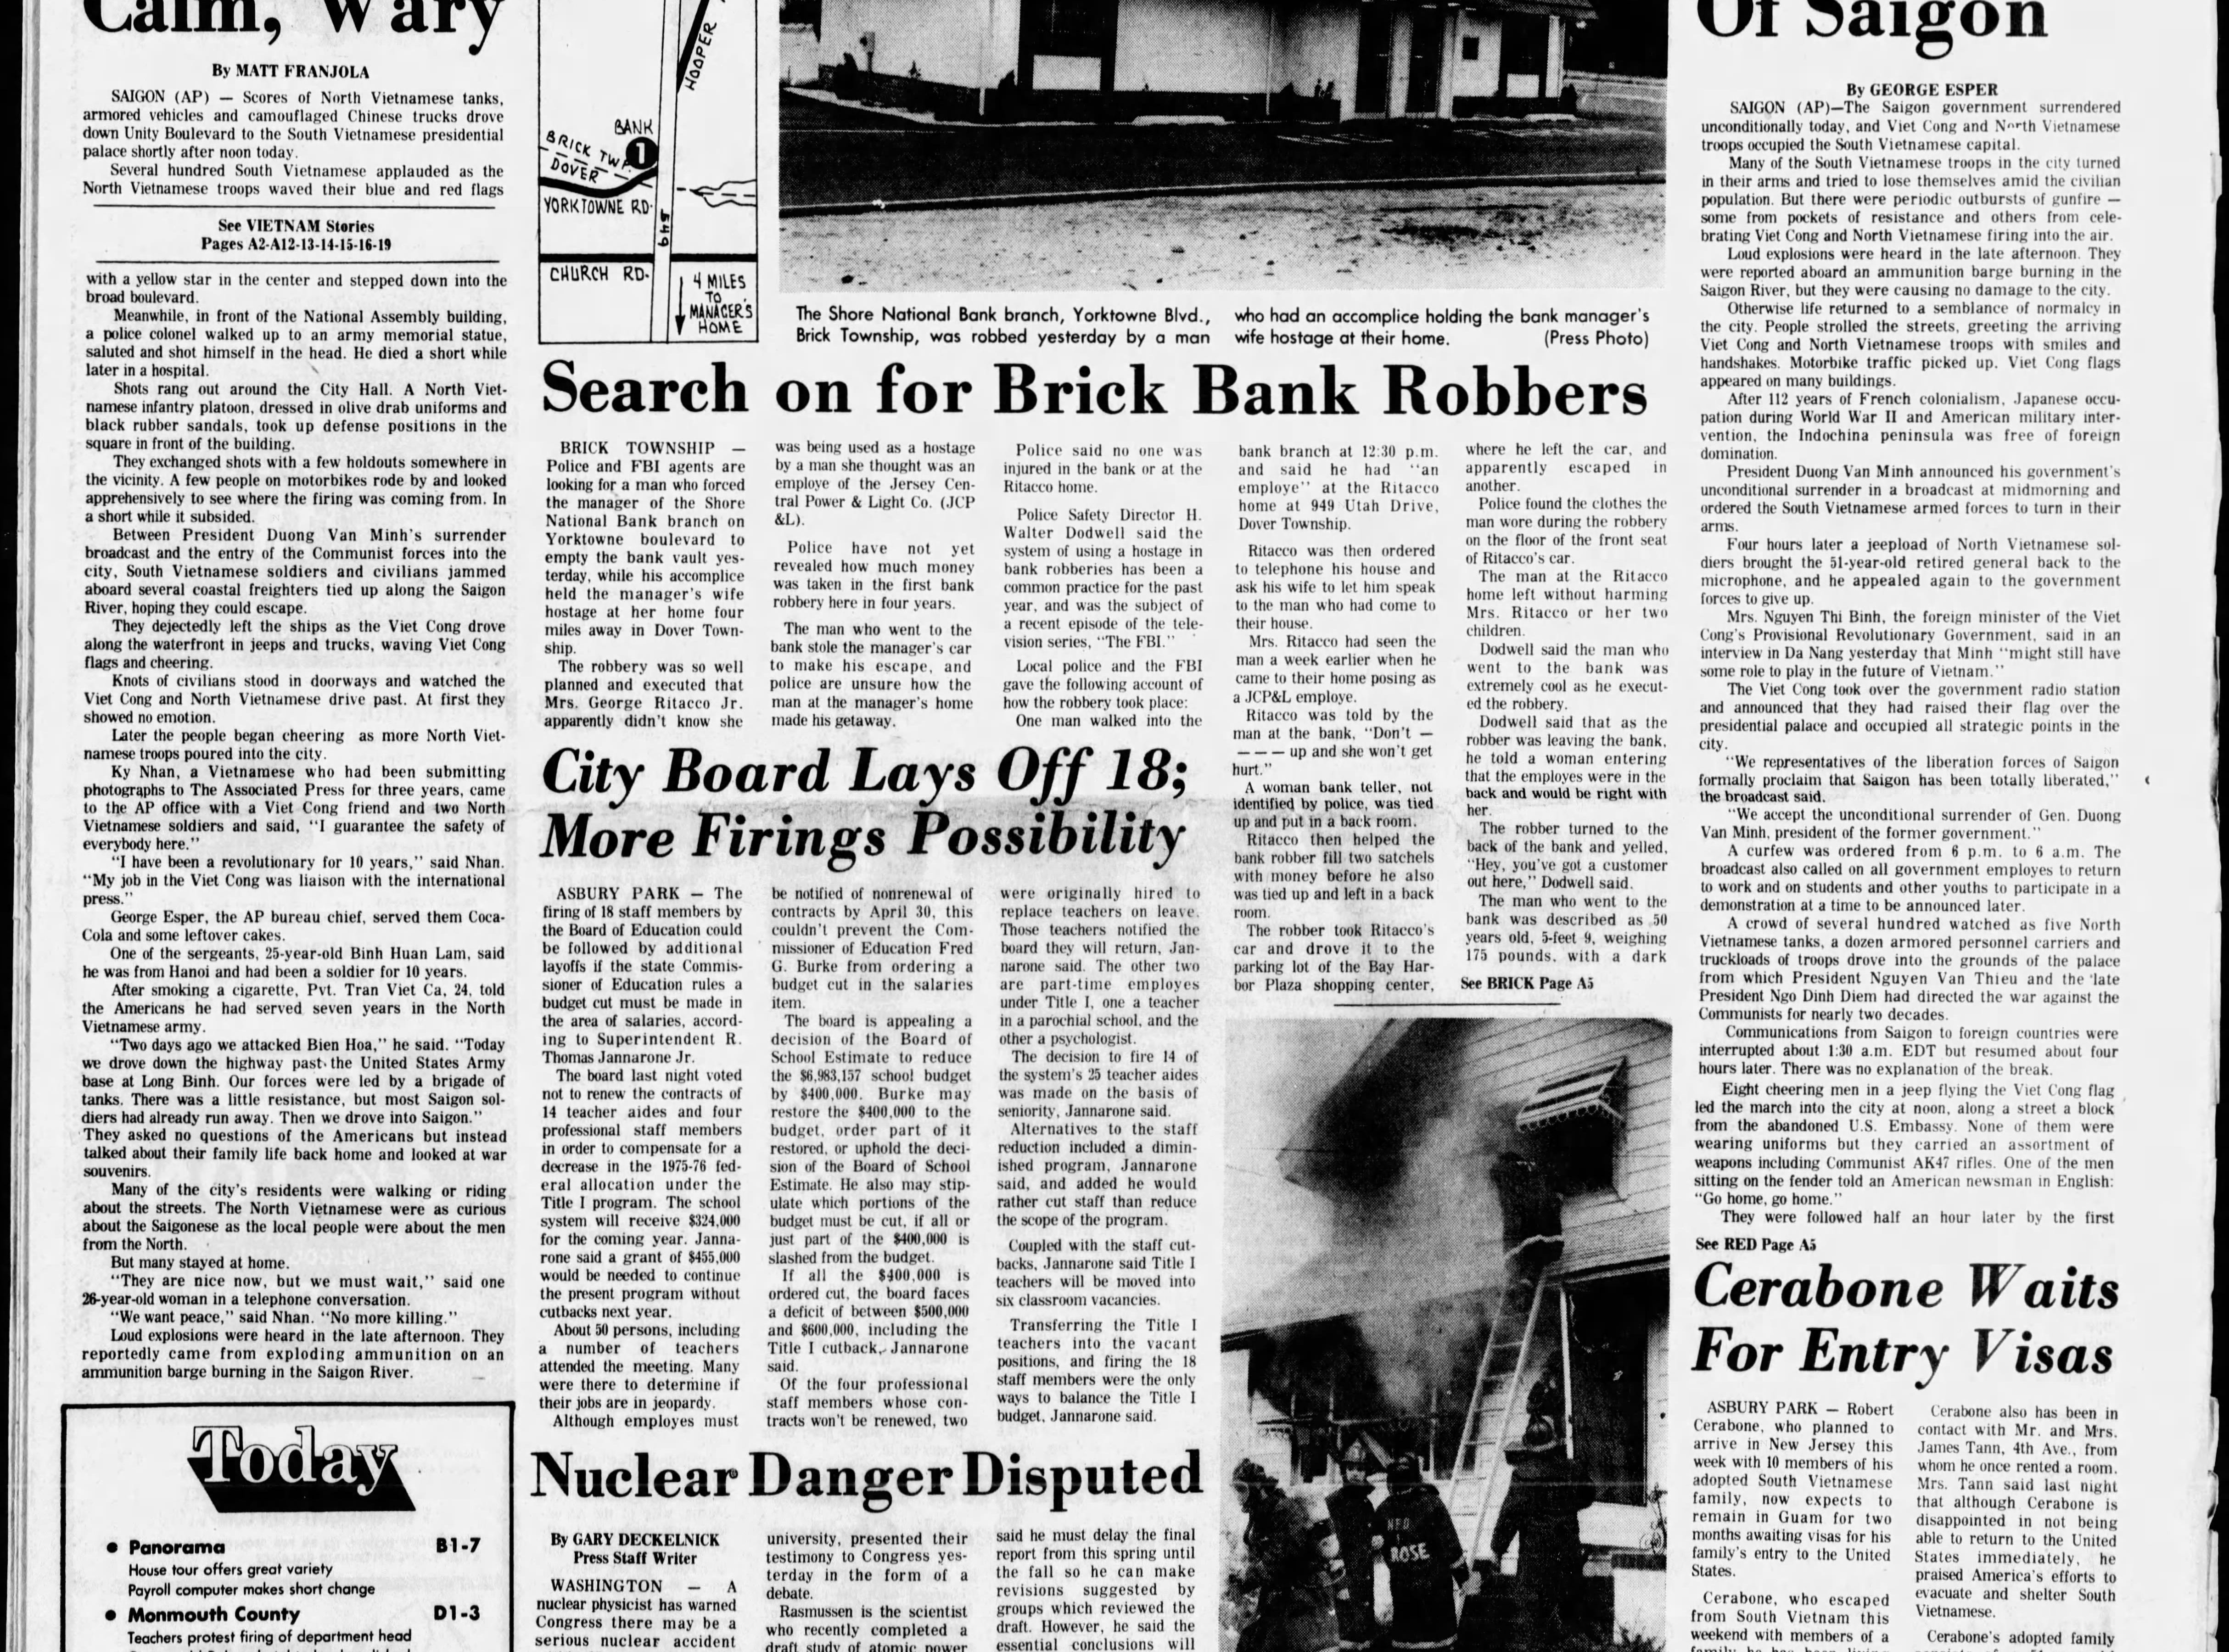 U.S.-backed South Vietnam falls to its communist North on Wednesday, April 30, 1975, bringing a close to the Vietnam War that resulted in the deaths of 58,220 American service members and more than a million others.